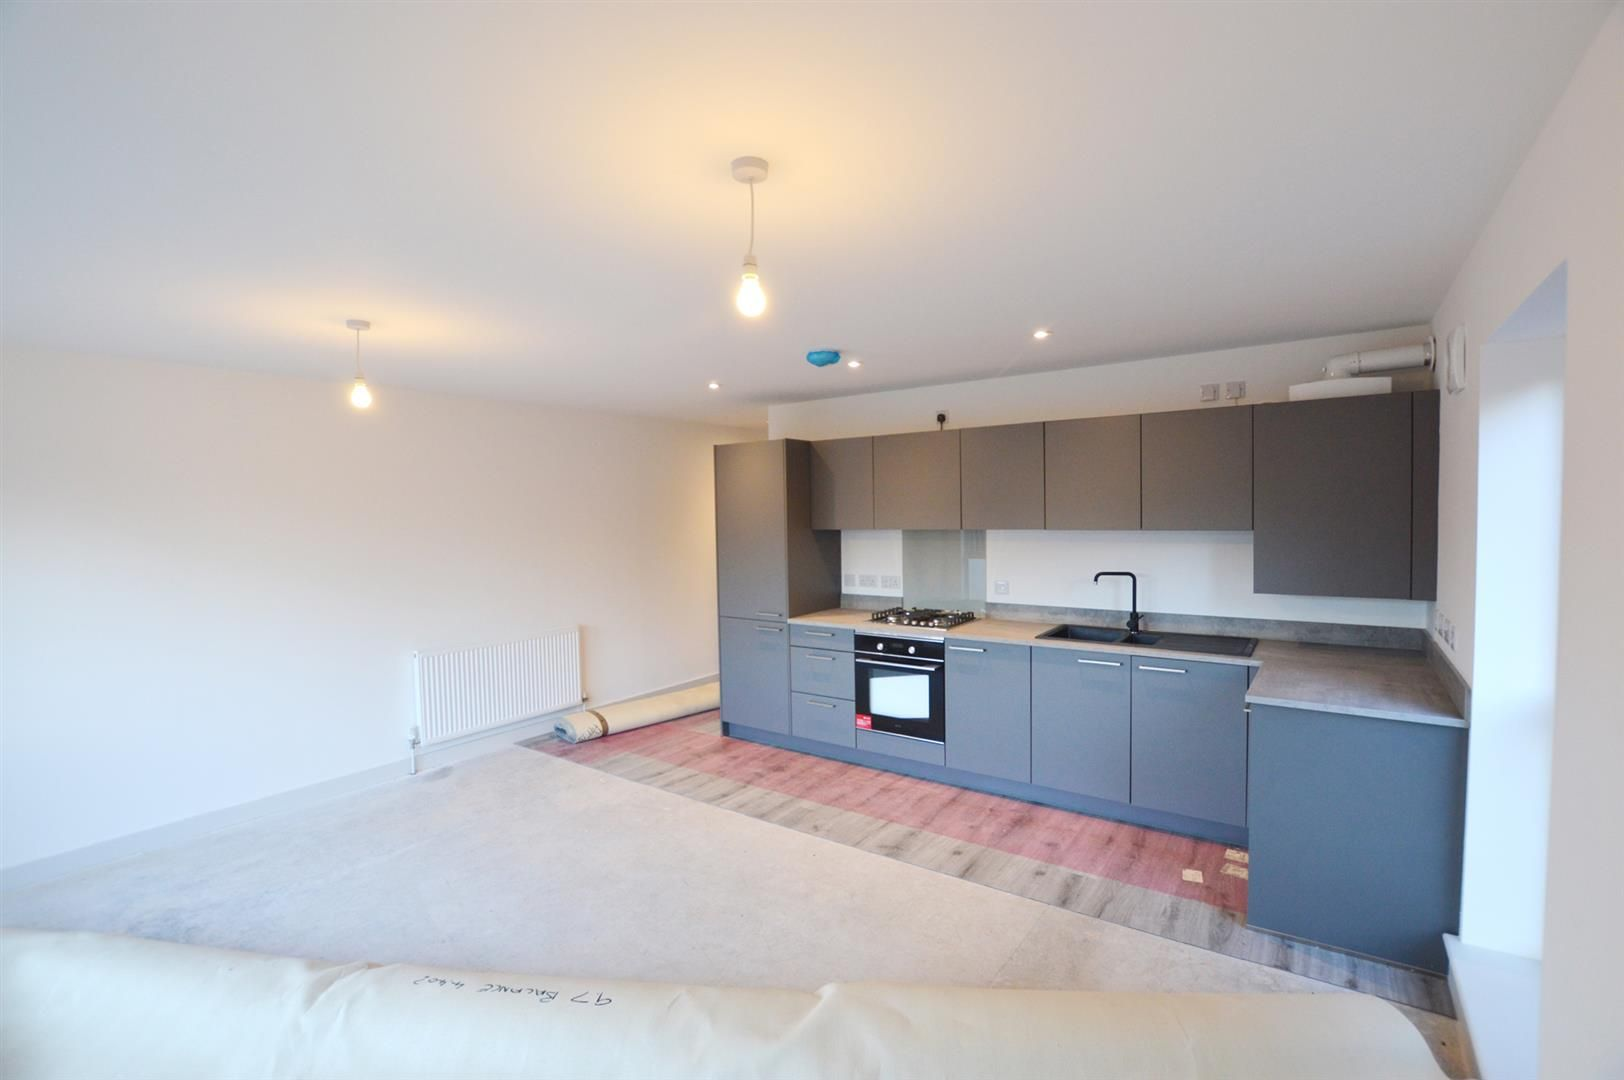 2 bed apartment for sale in Leominster  - Property Image 5